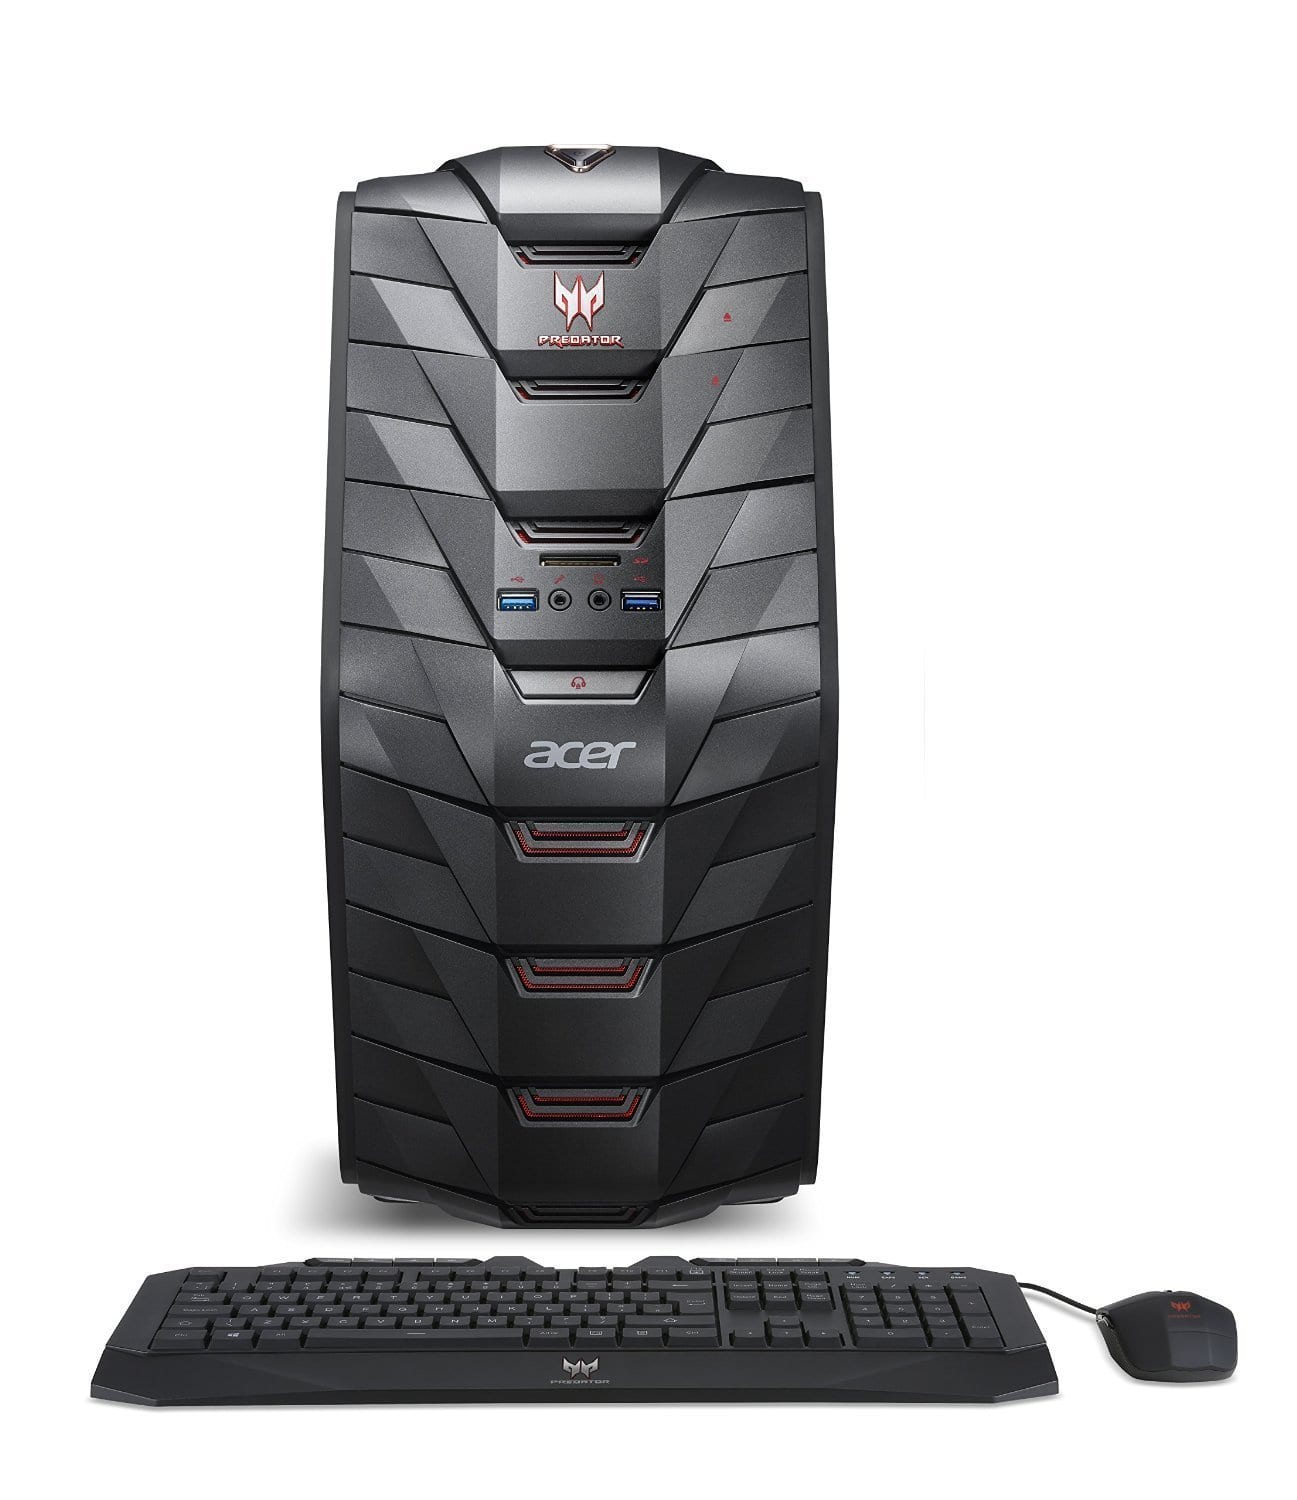 Acer Predator Desktop PC: Intel Core i5-6400, 8GB DDR4, 128GB SSD + 1TB HDD, GTX 1060, Win 10 $749.99 + Free Shipping / Free Pickup @ Walmart